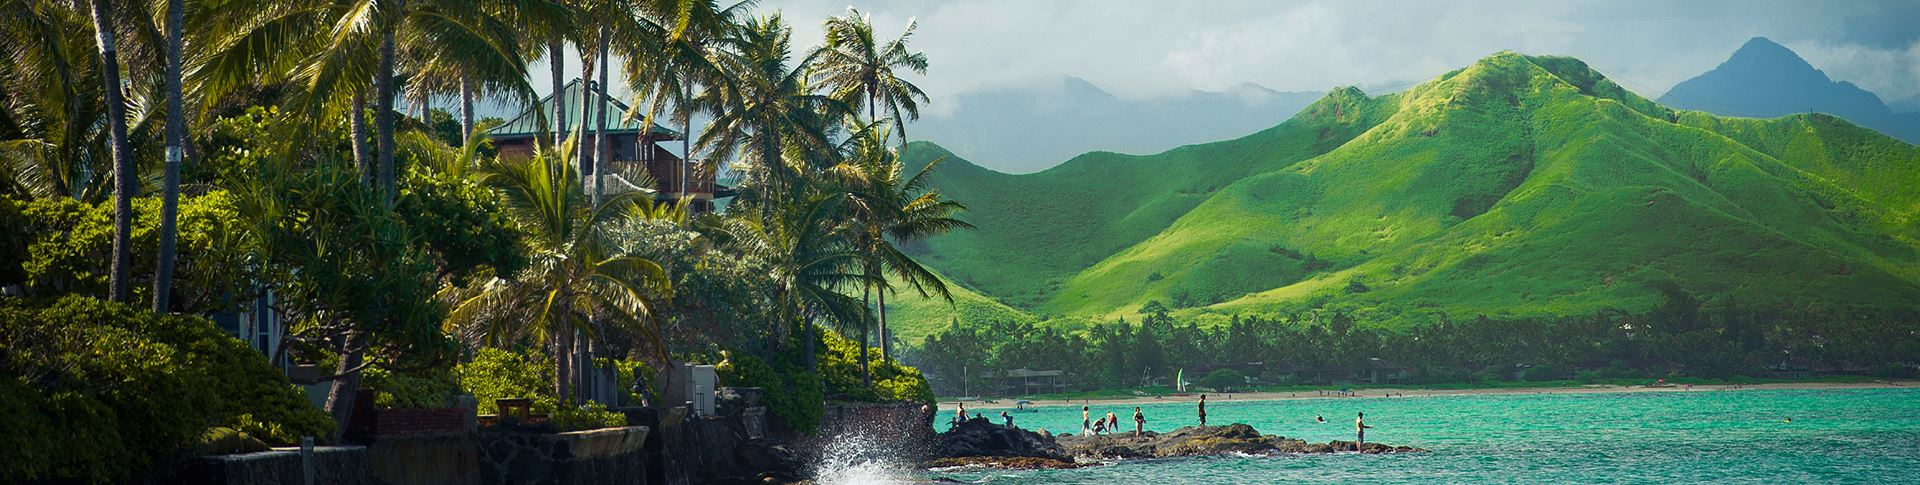 hawaii ocean and lush green mountains